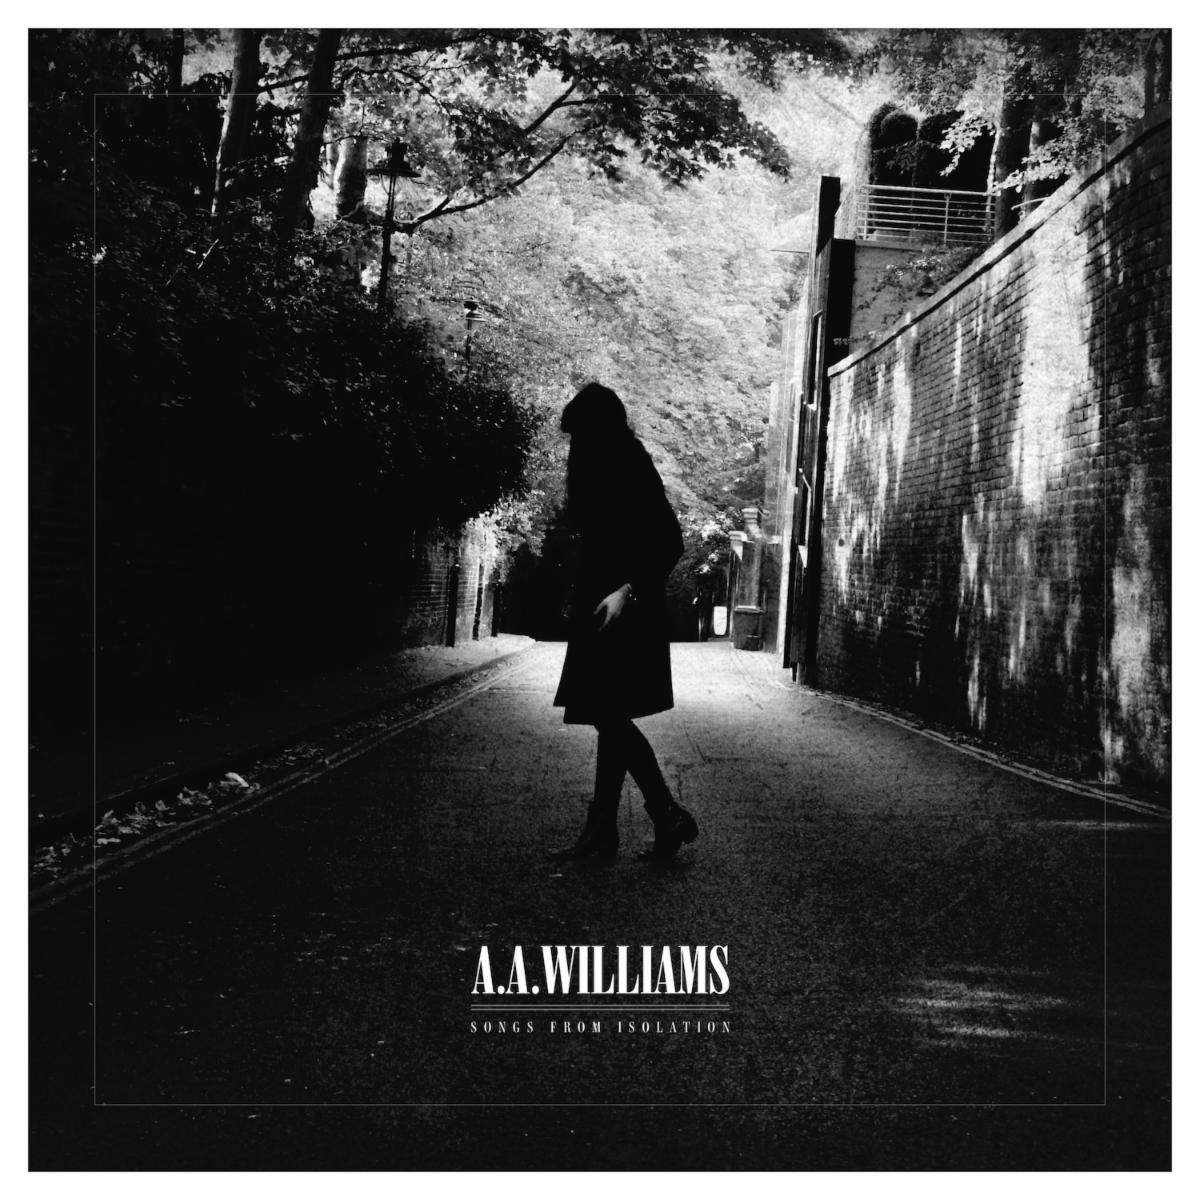 A.A. Williams Shares Cover Of The Moody Blues 'Nights In White Satin'